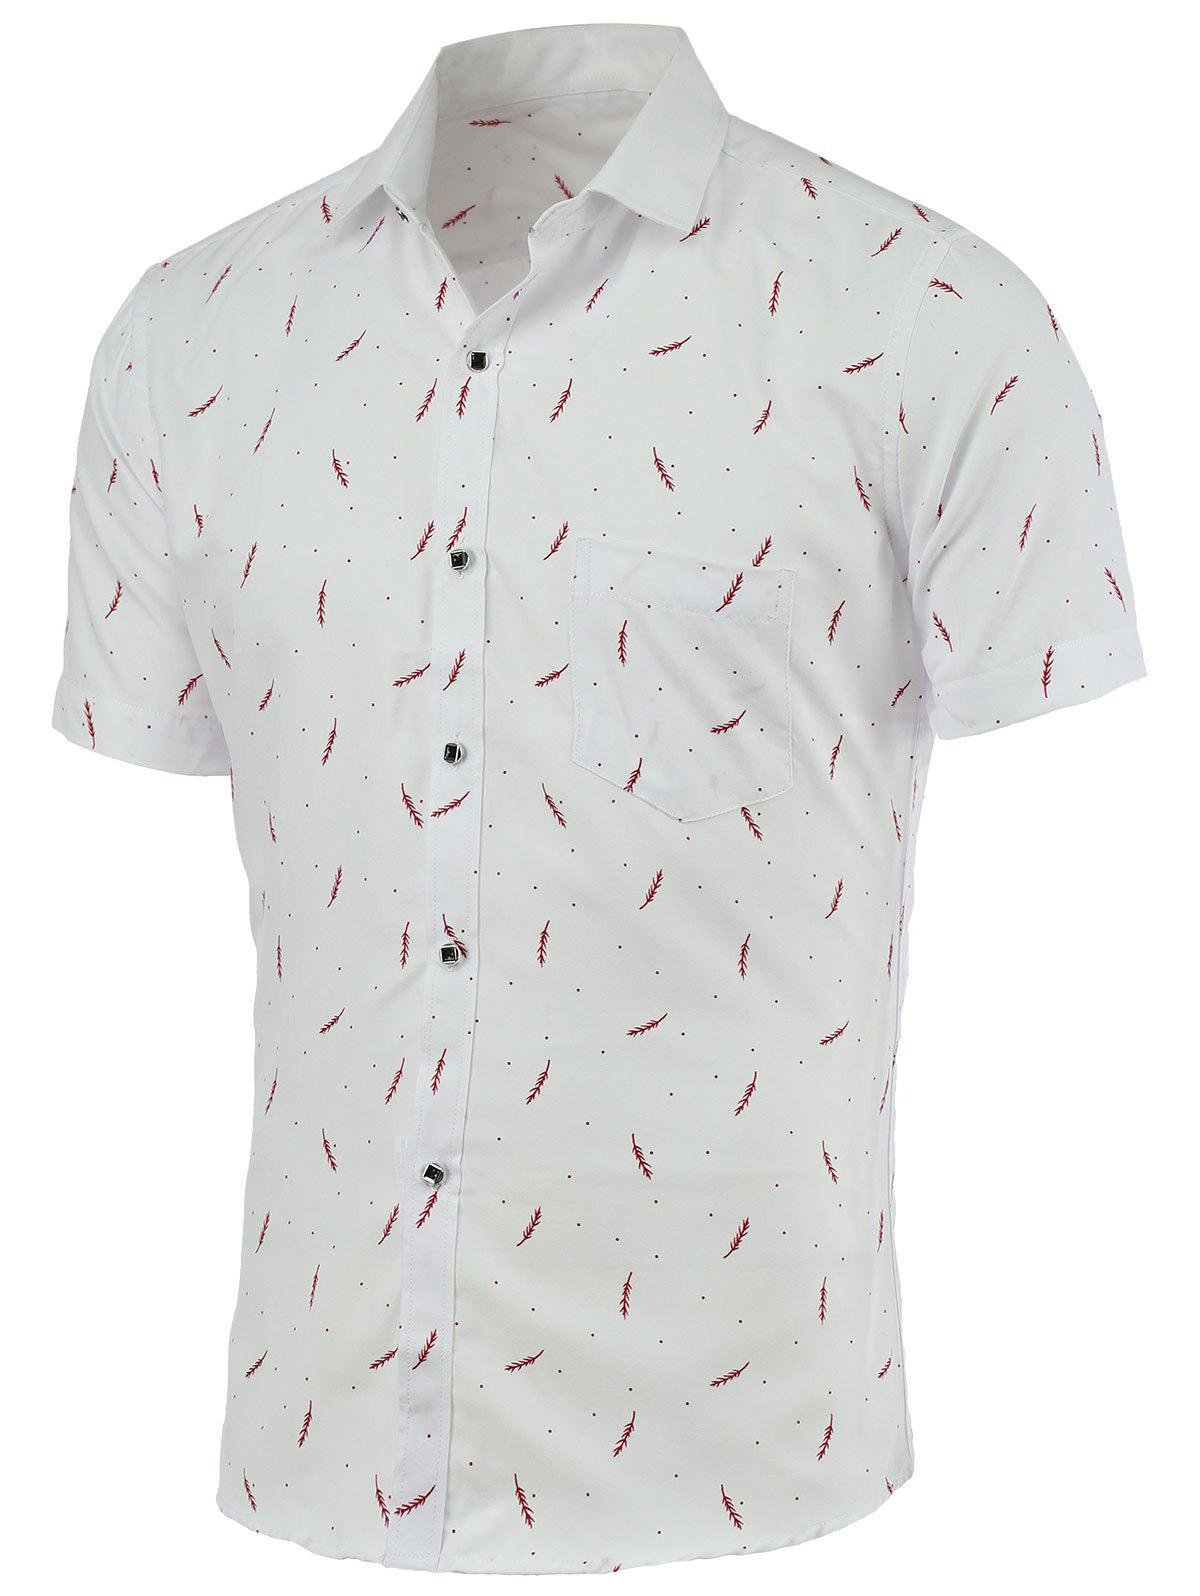 Refreshing Feather Desigh Turn-Down Collar Short Sleeves Shirt For Men - RED/WHITE 4XL